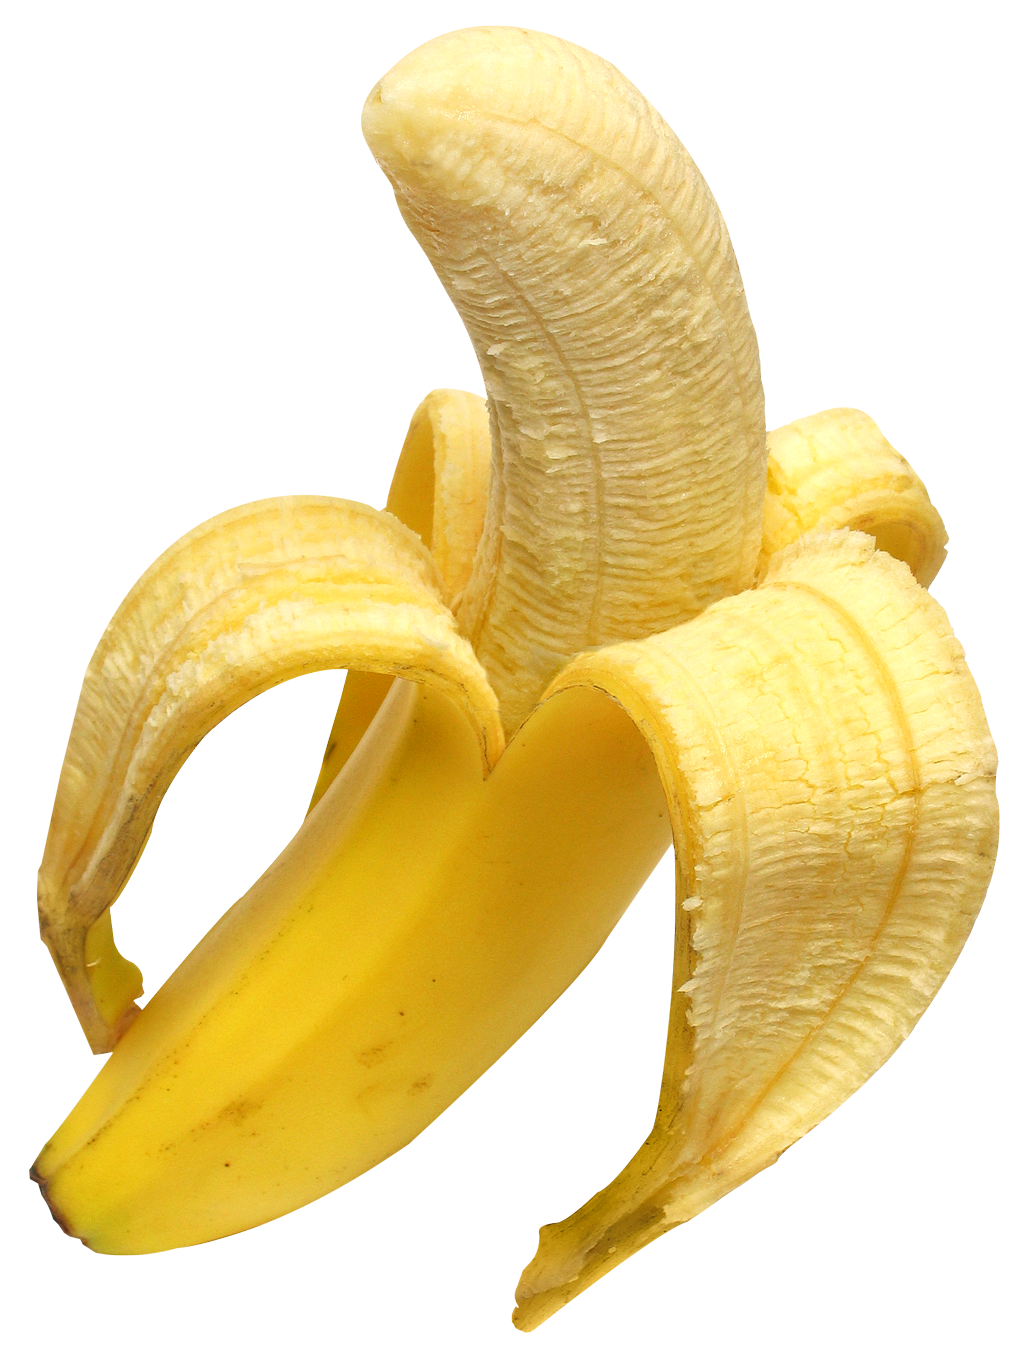 bananas png - photo #7